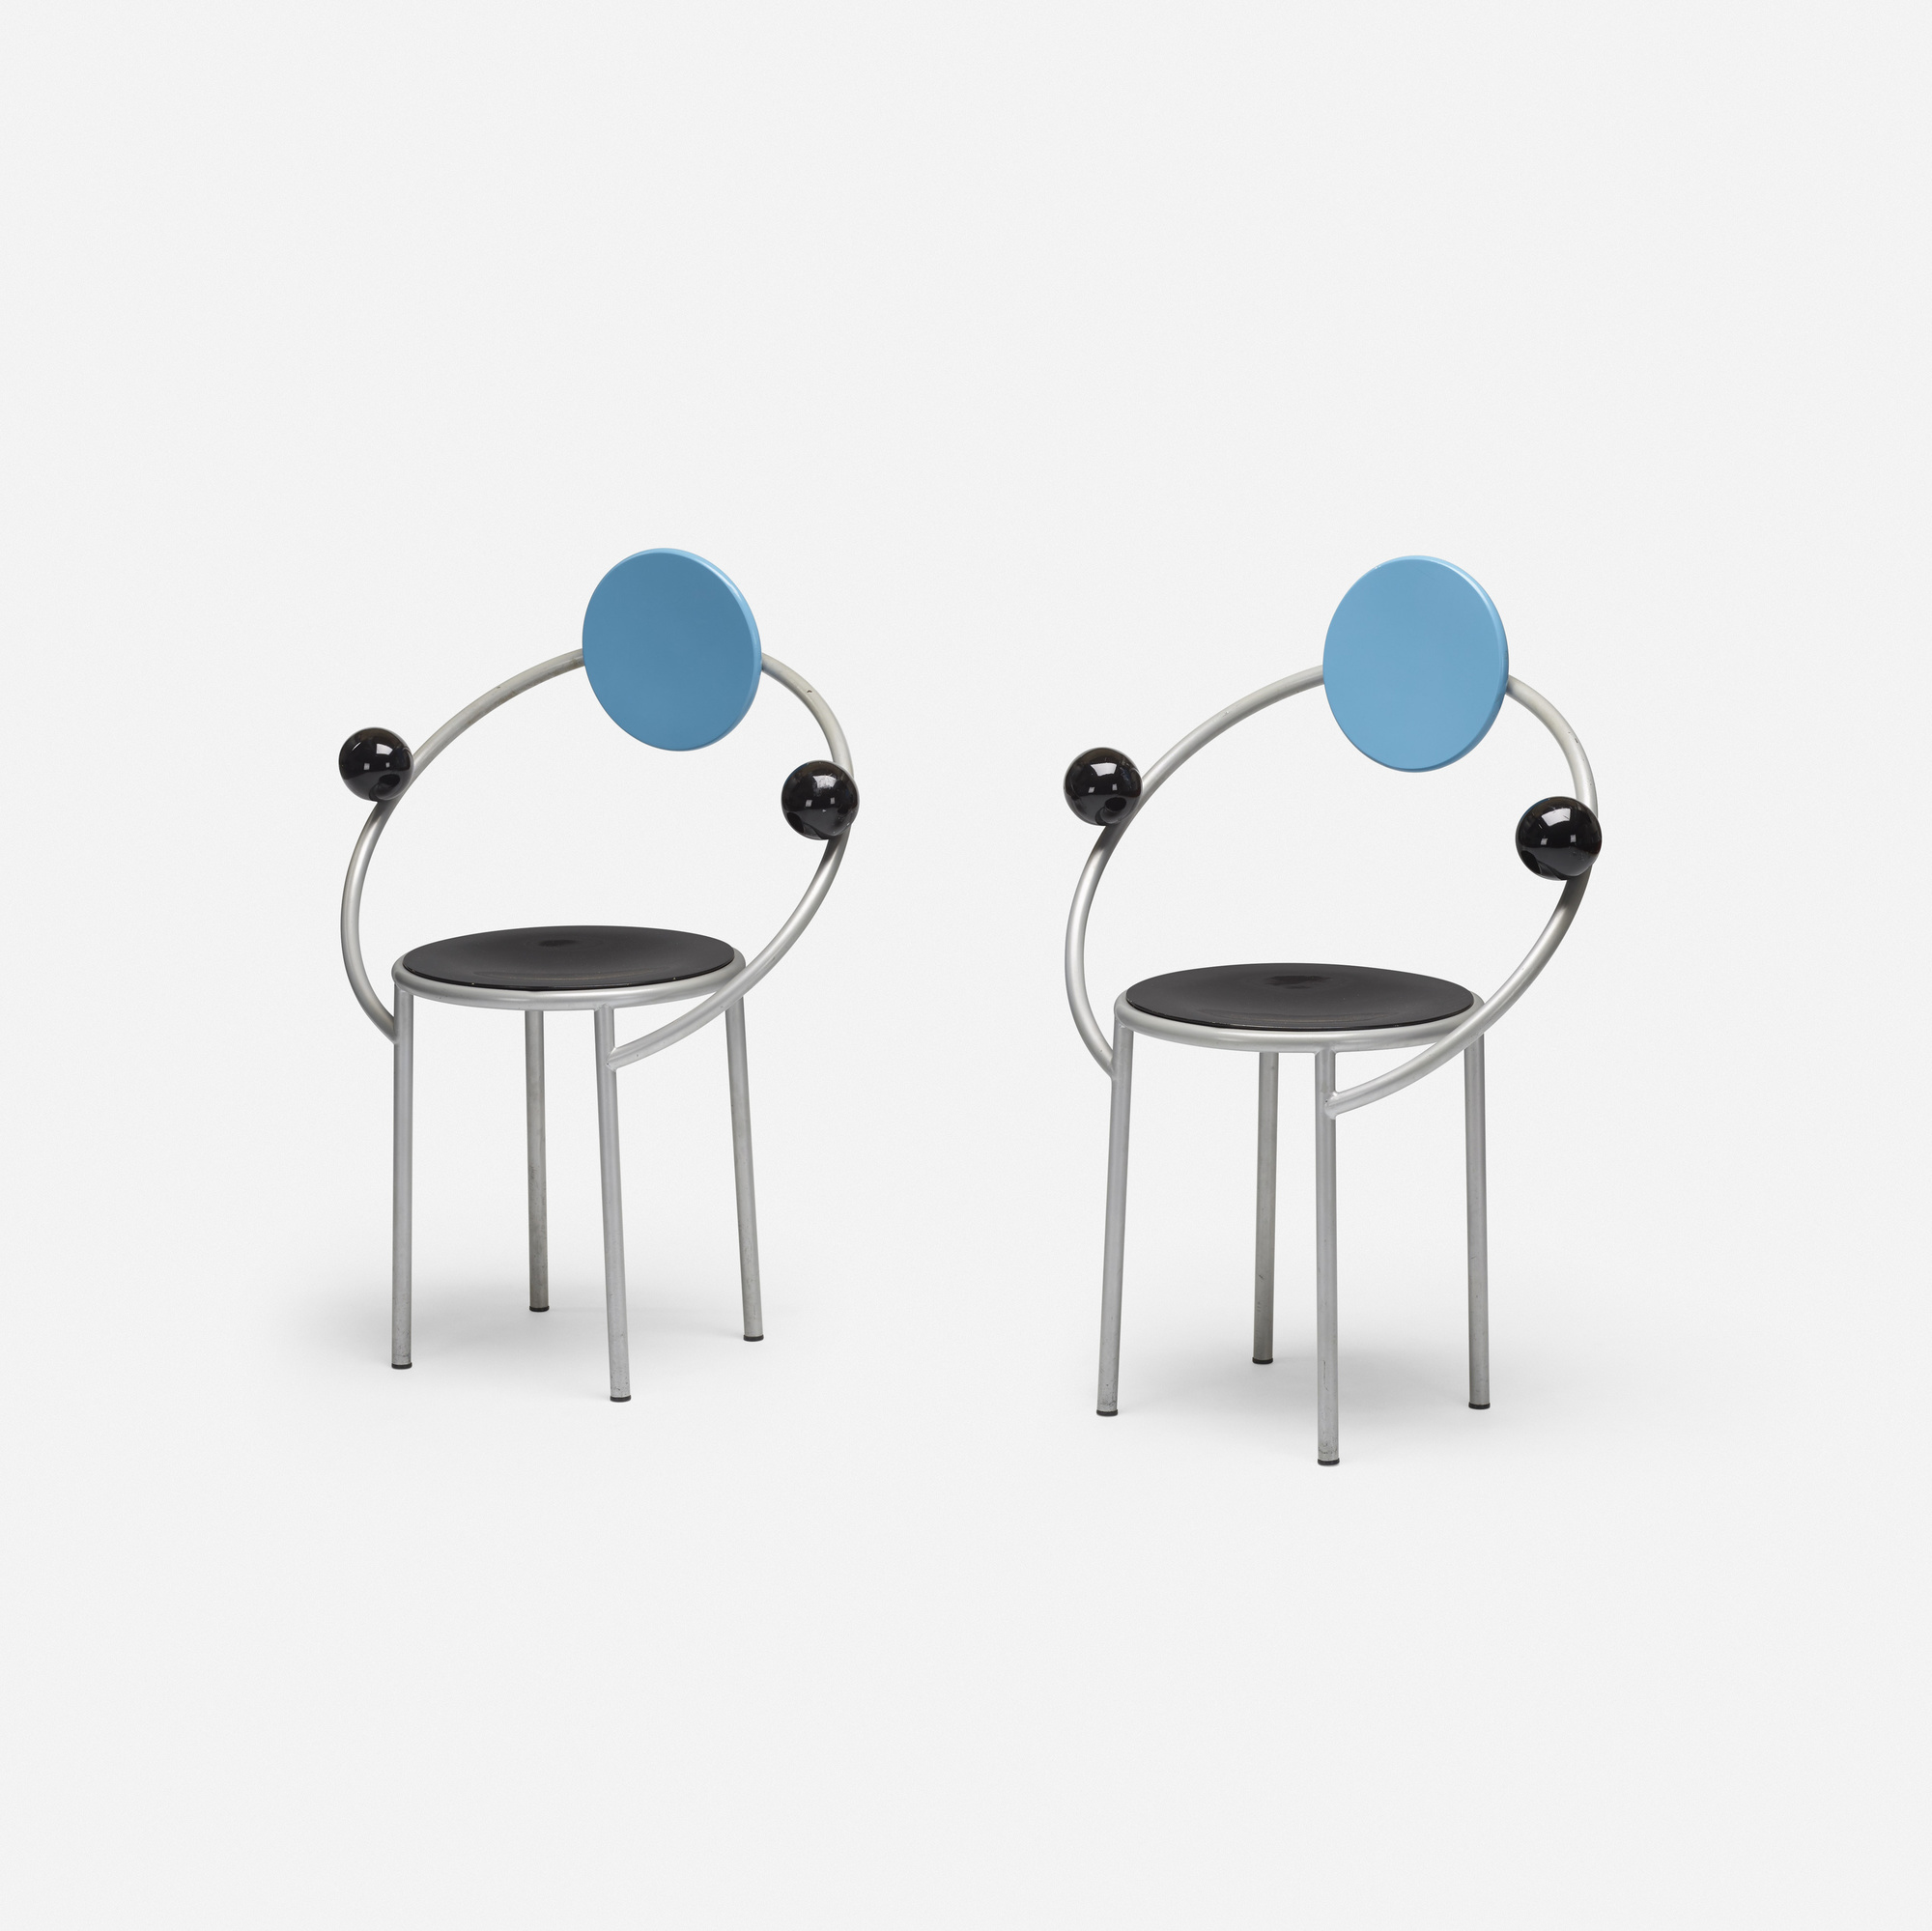 234: Michele De Lucchi / First chairs, pair (1 of 3)